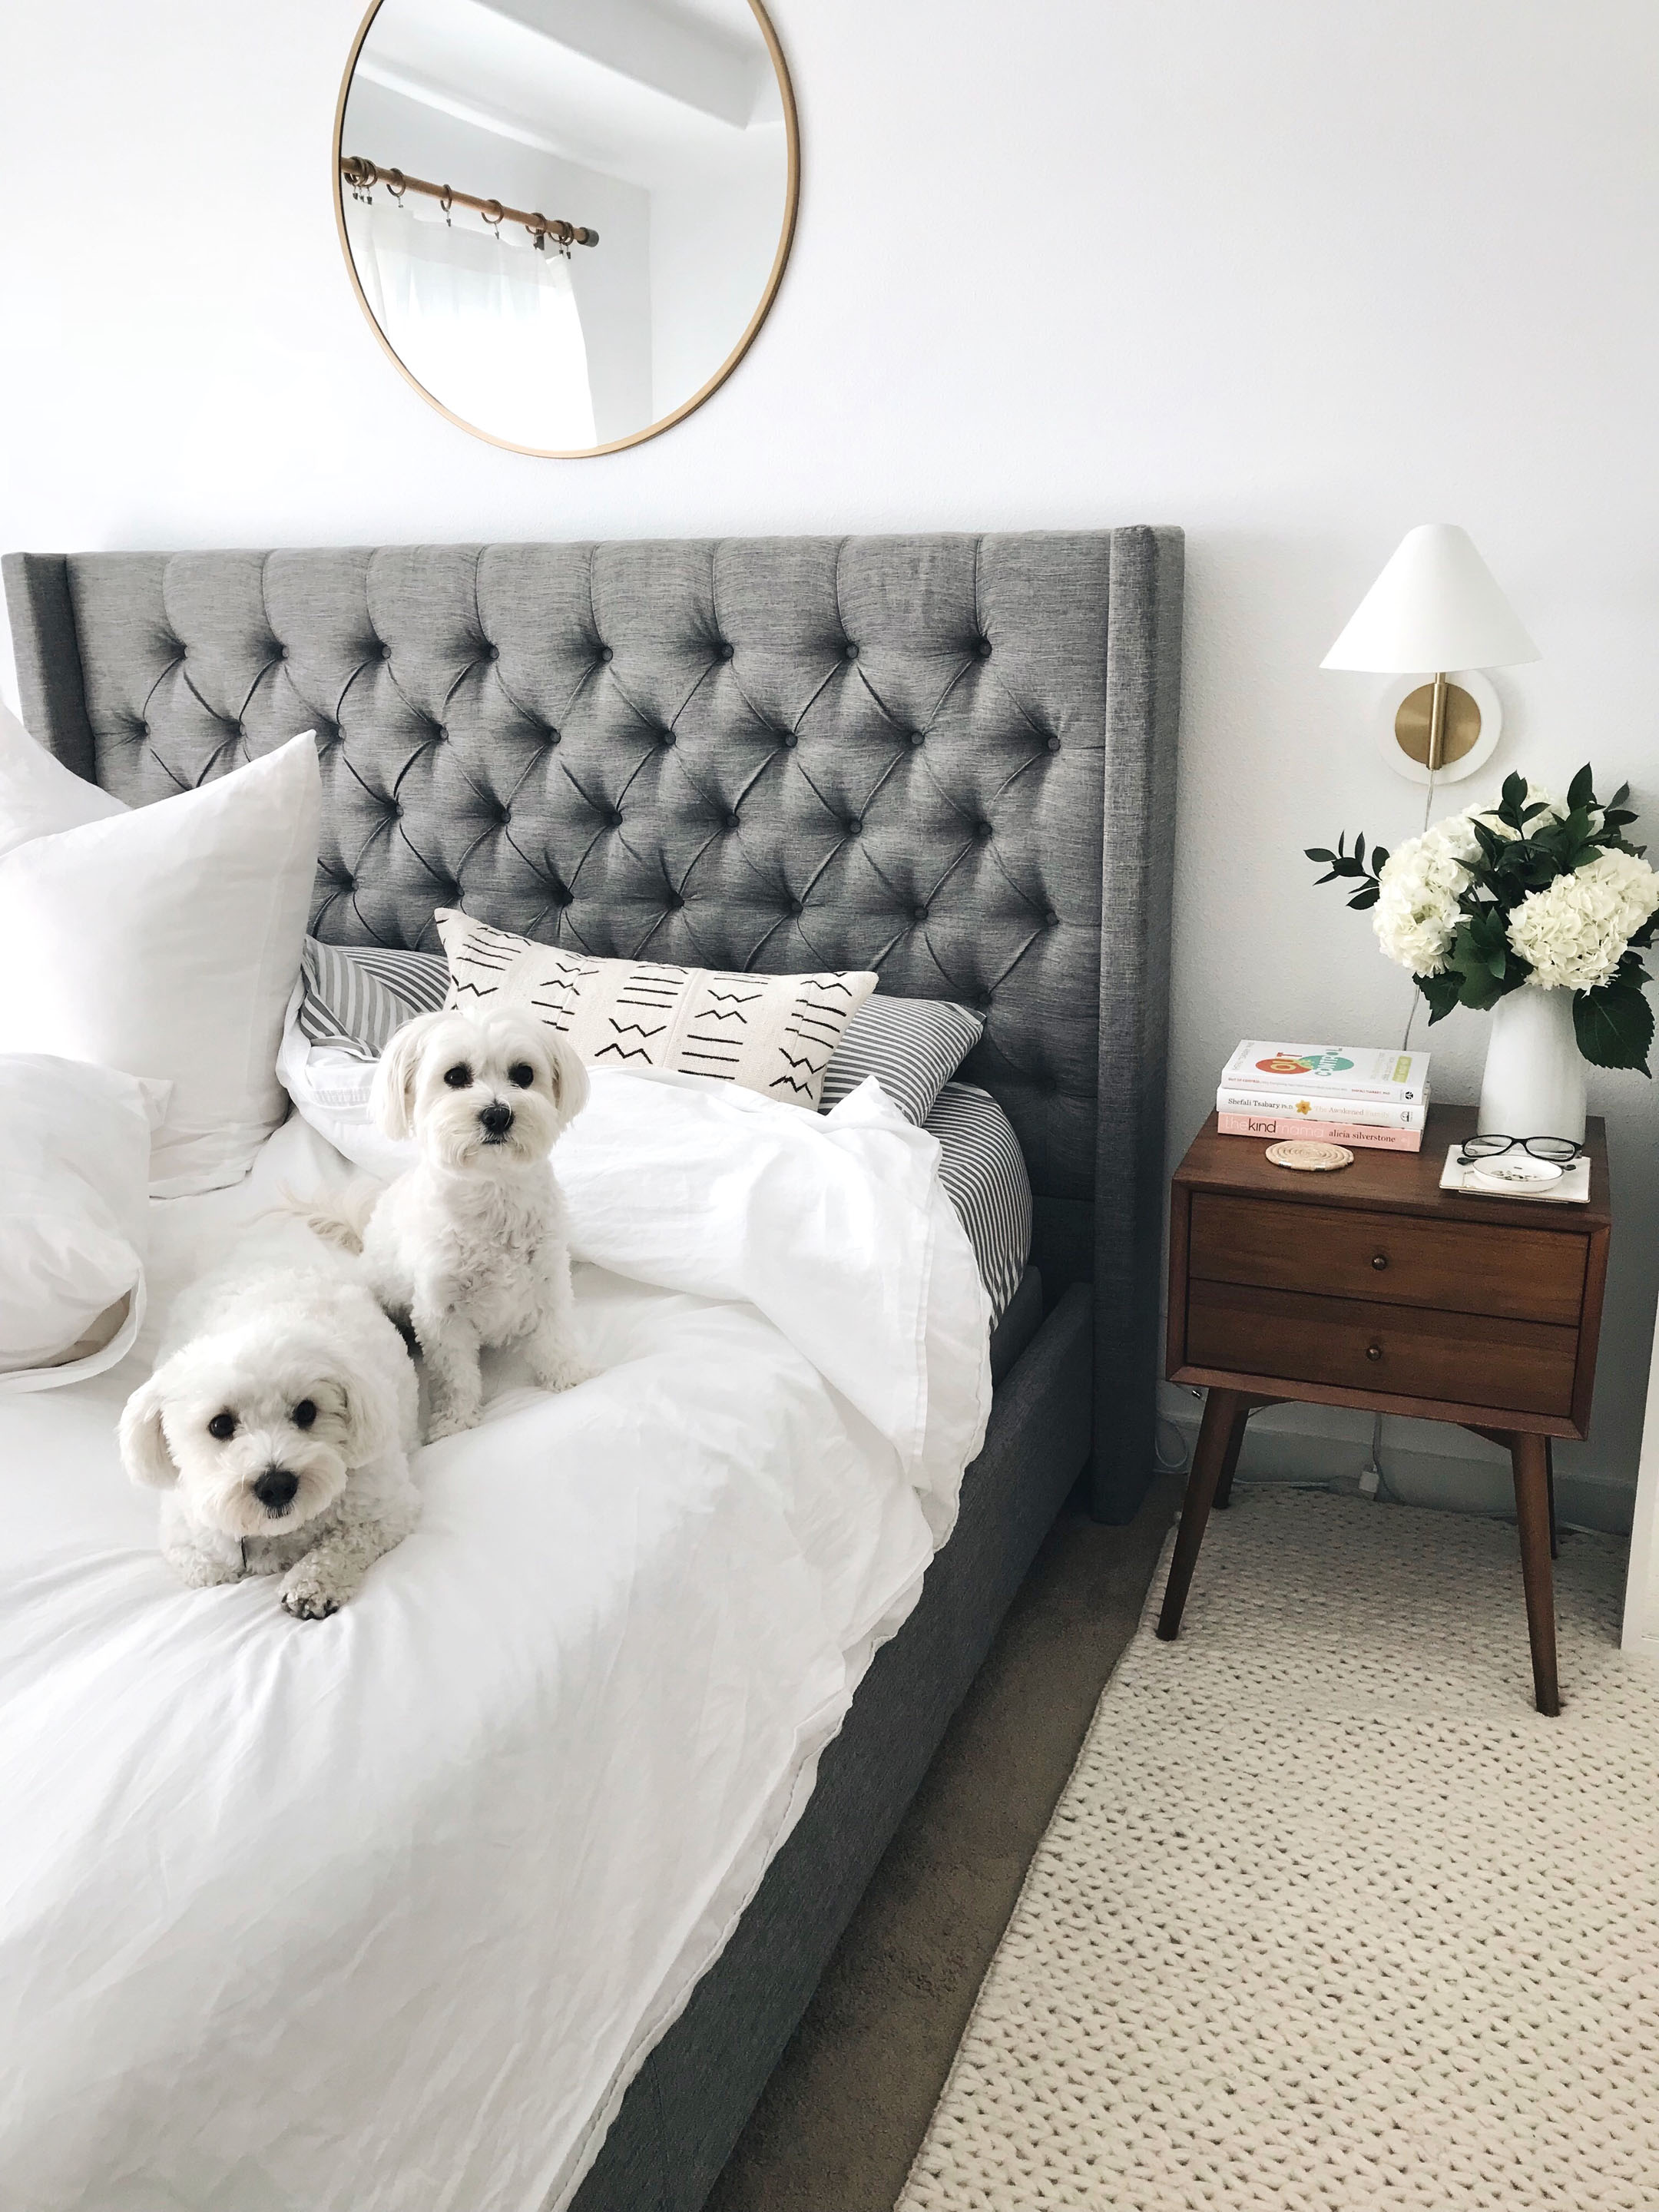 I M Back With Another Roundup Of S But This Time It Dedicated To My Home Decor Bed Frame From Wayfair Has Been Number One Er For The